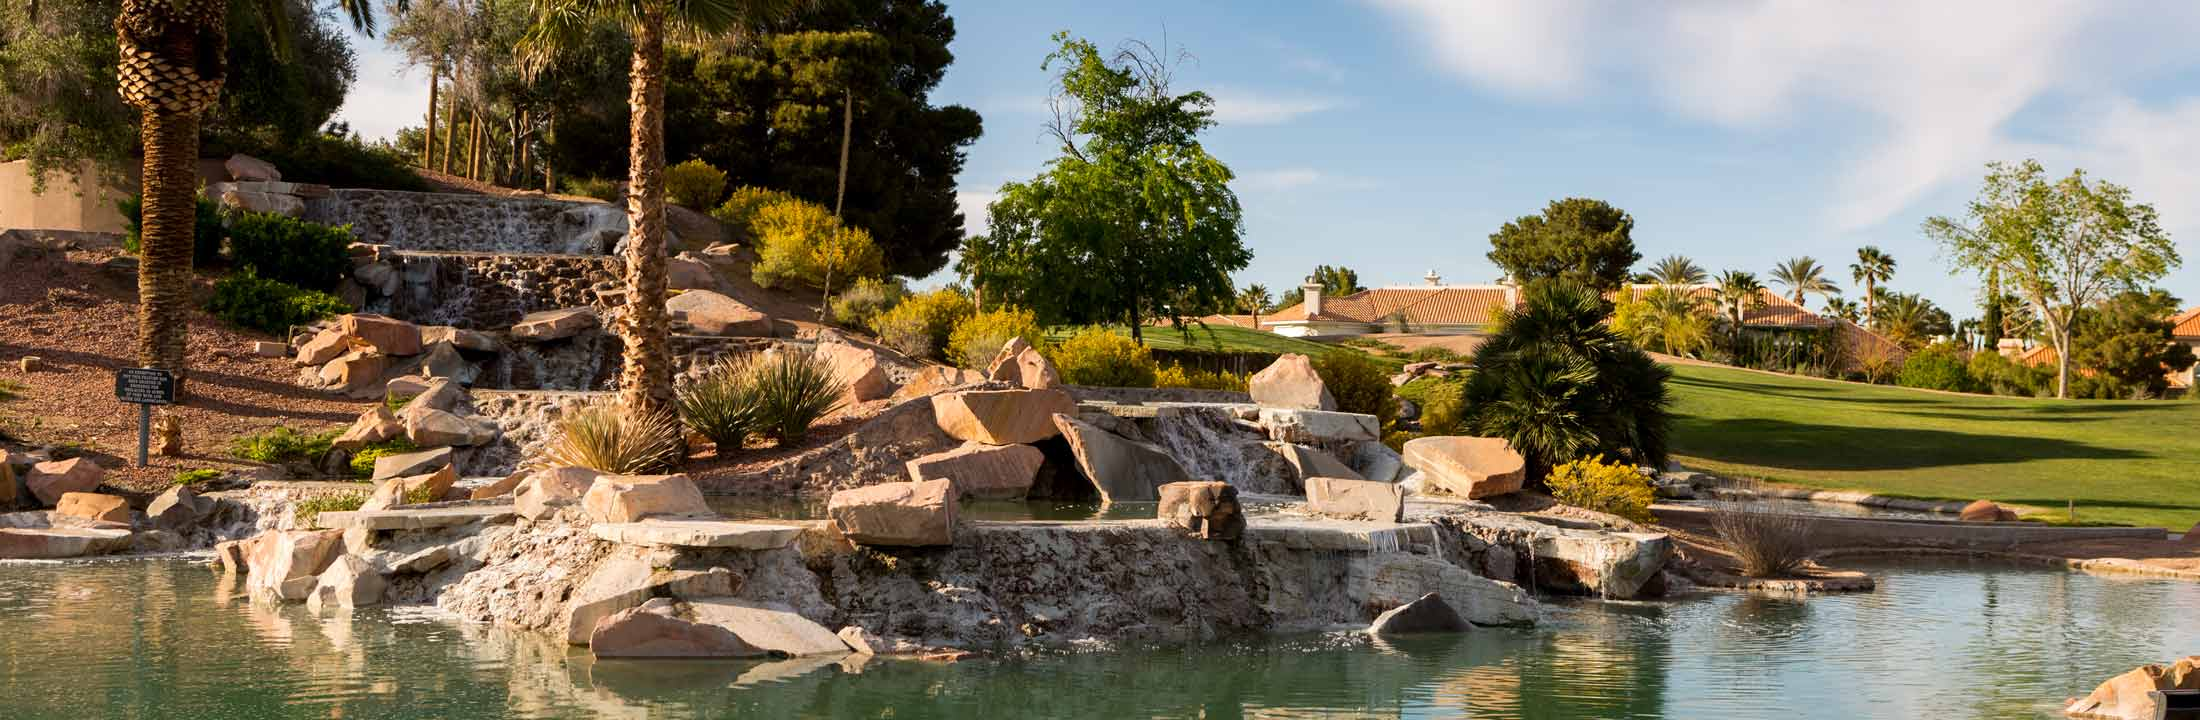 South West Las Vegas Homes For Sale By Every Brokerage